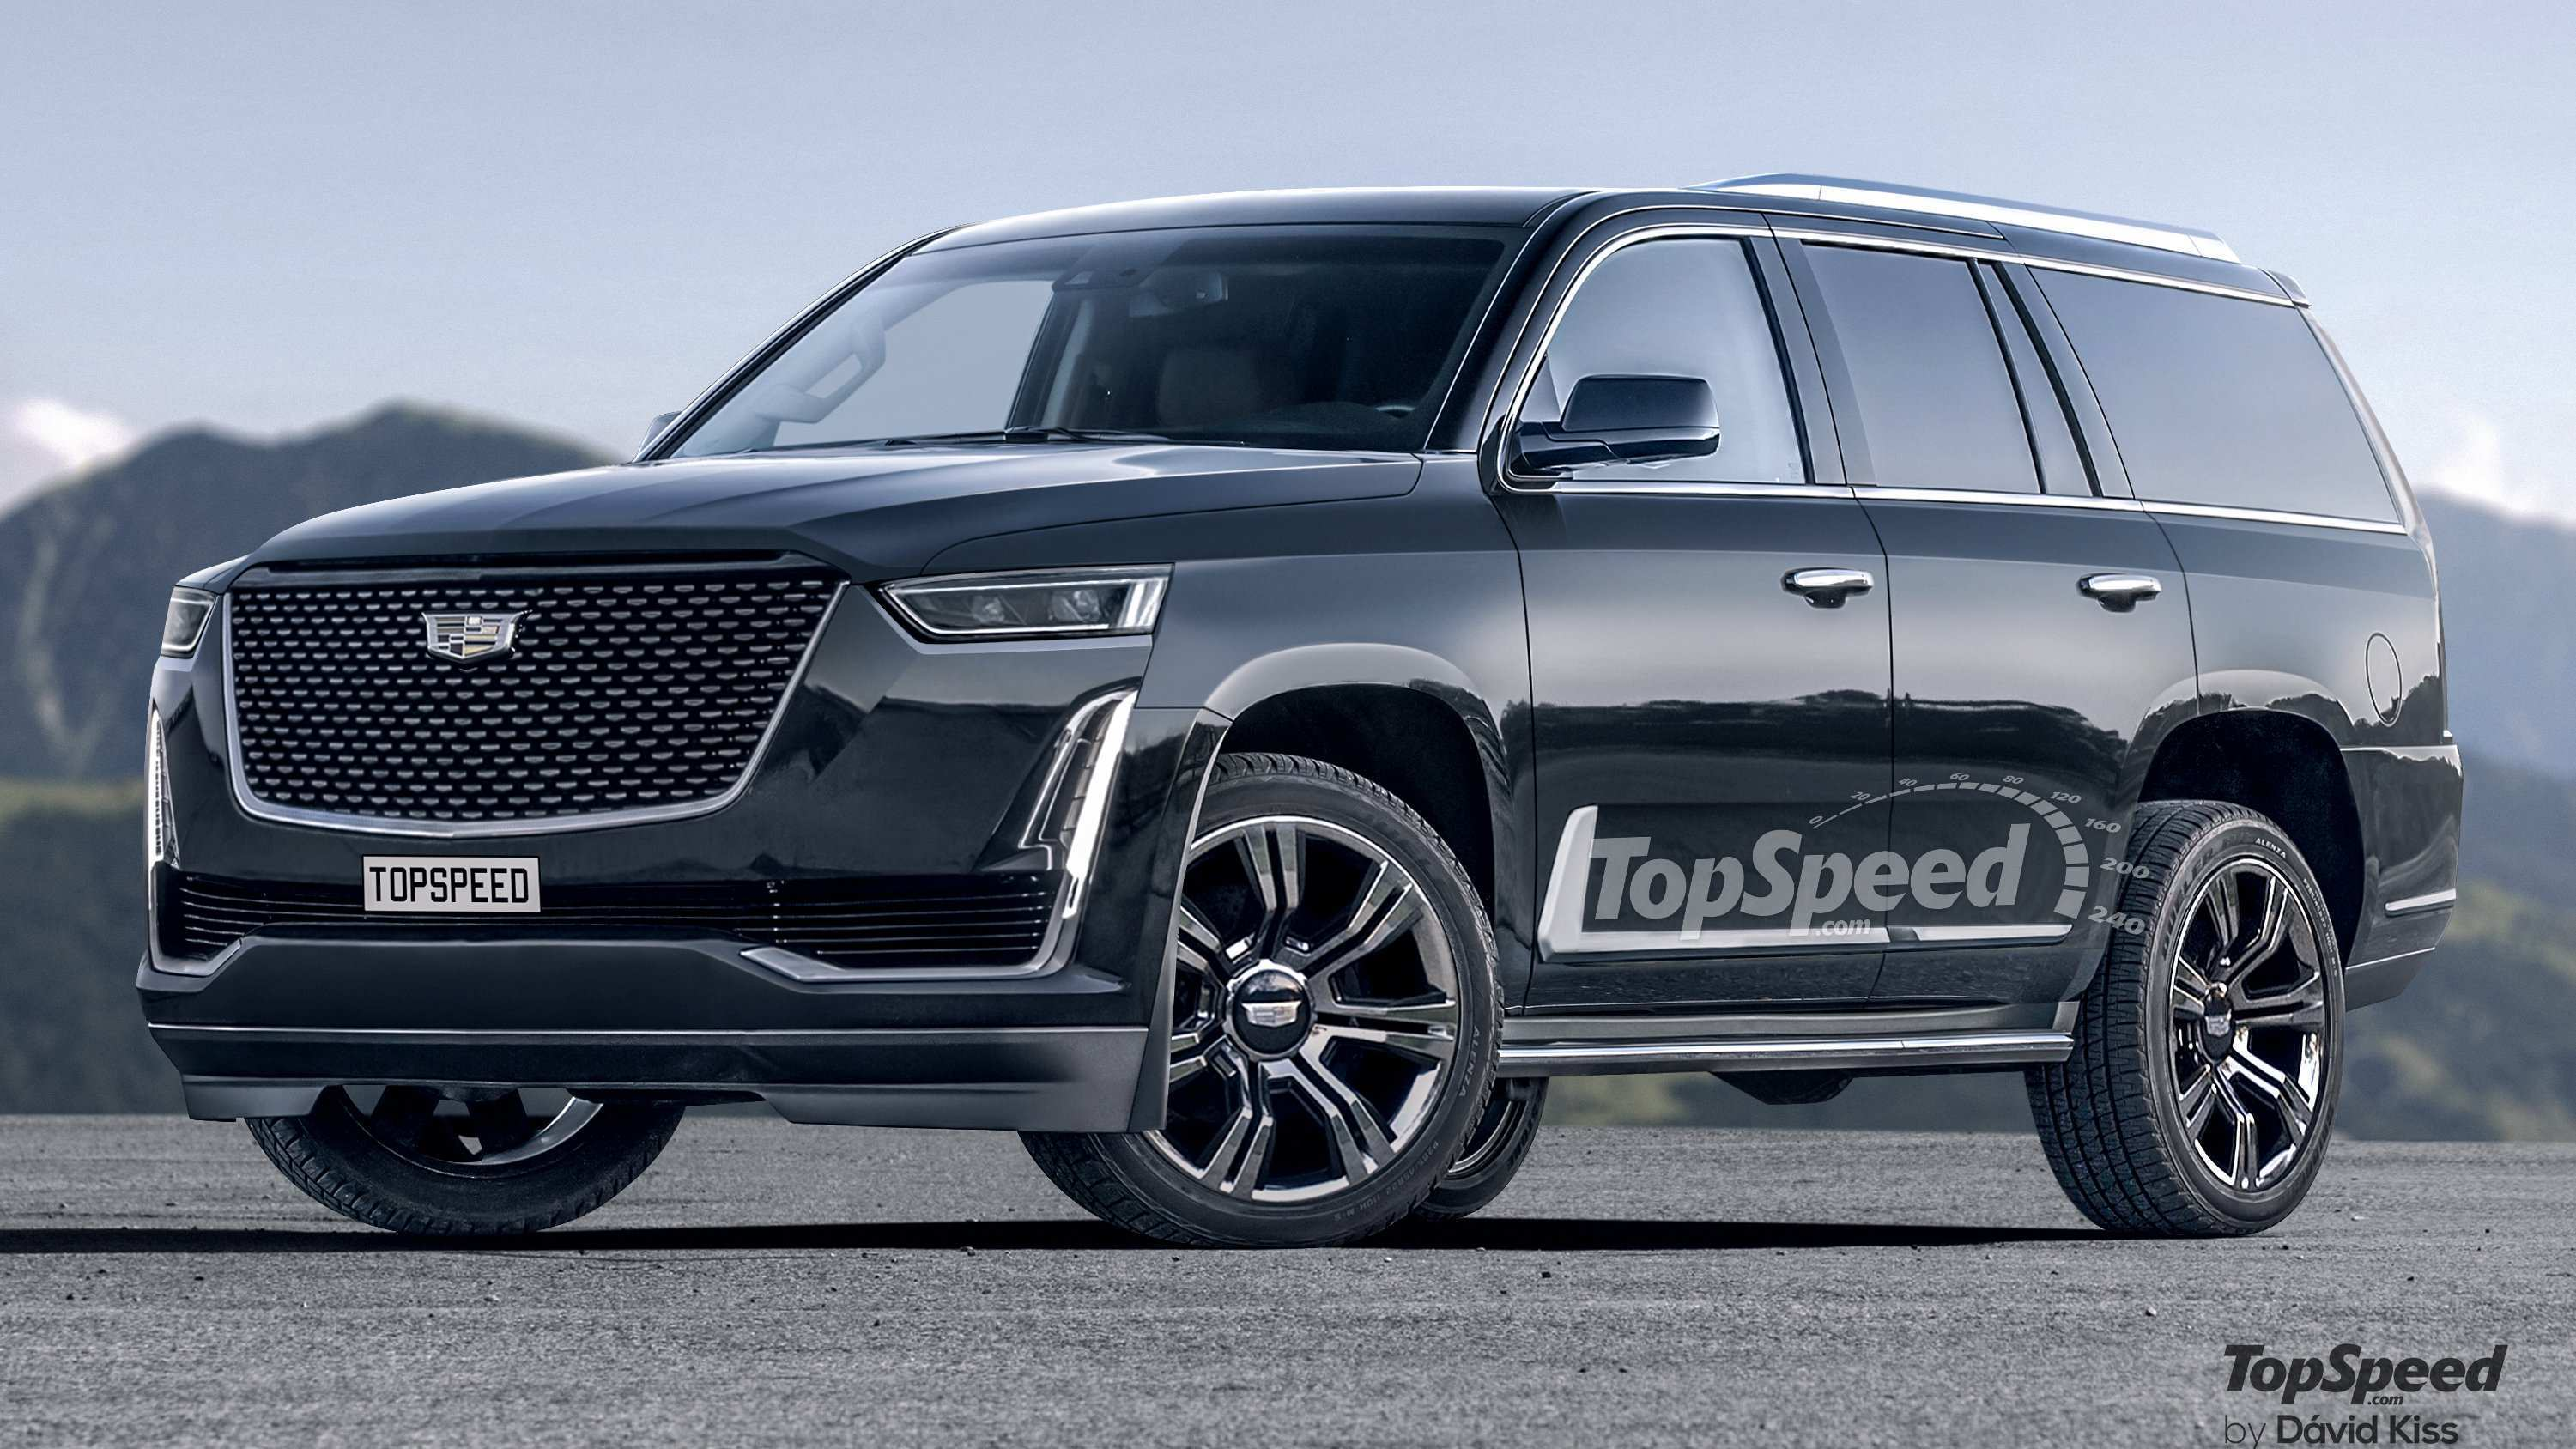 28 A 2020 Cadillac Suv Lineup Picture